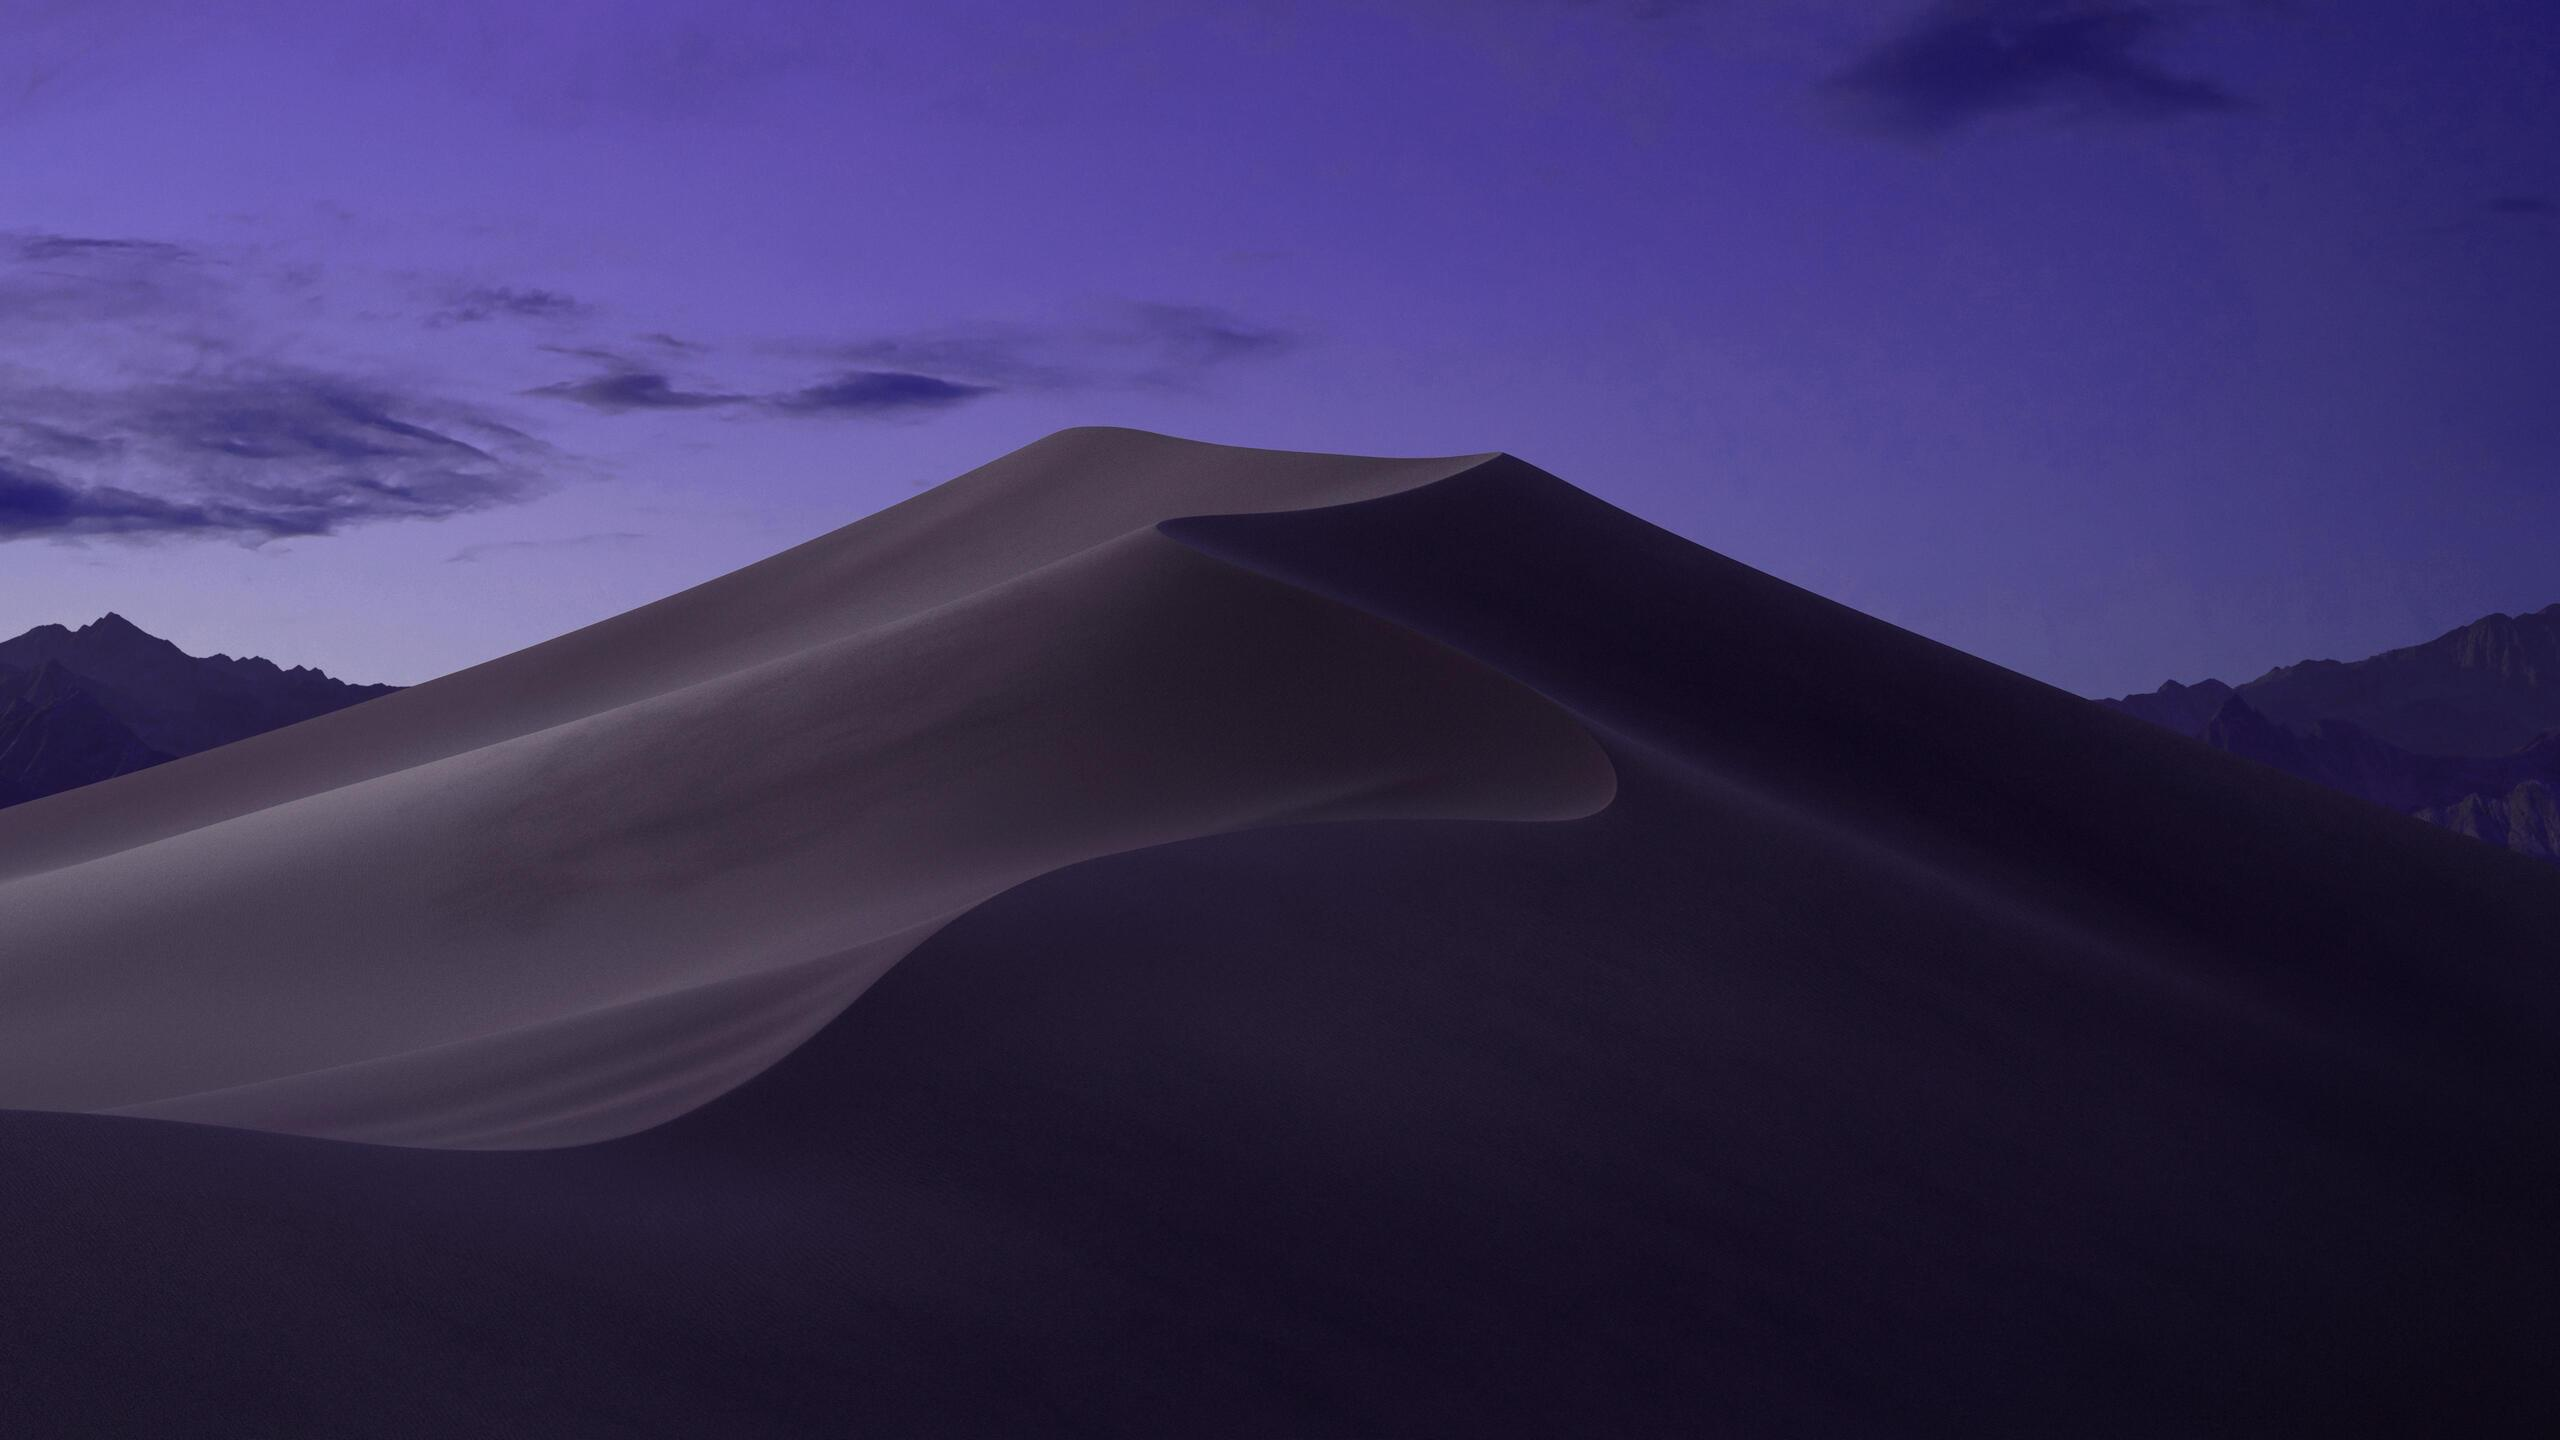 2560x1440 Mac Os Mojave 5k 1440p Resolution Hd 4k Wallpapers Images Backgrounds Photos And Pictures